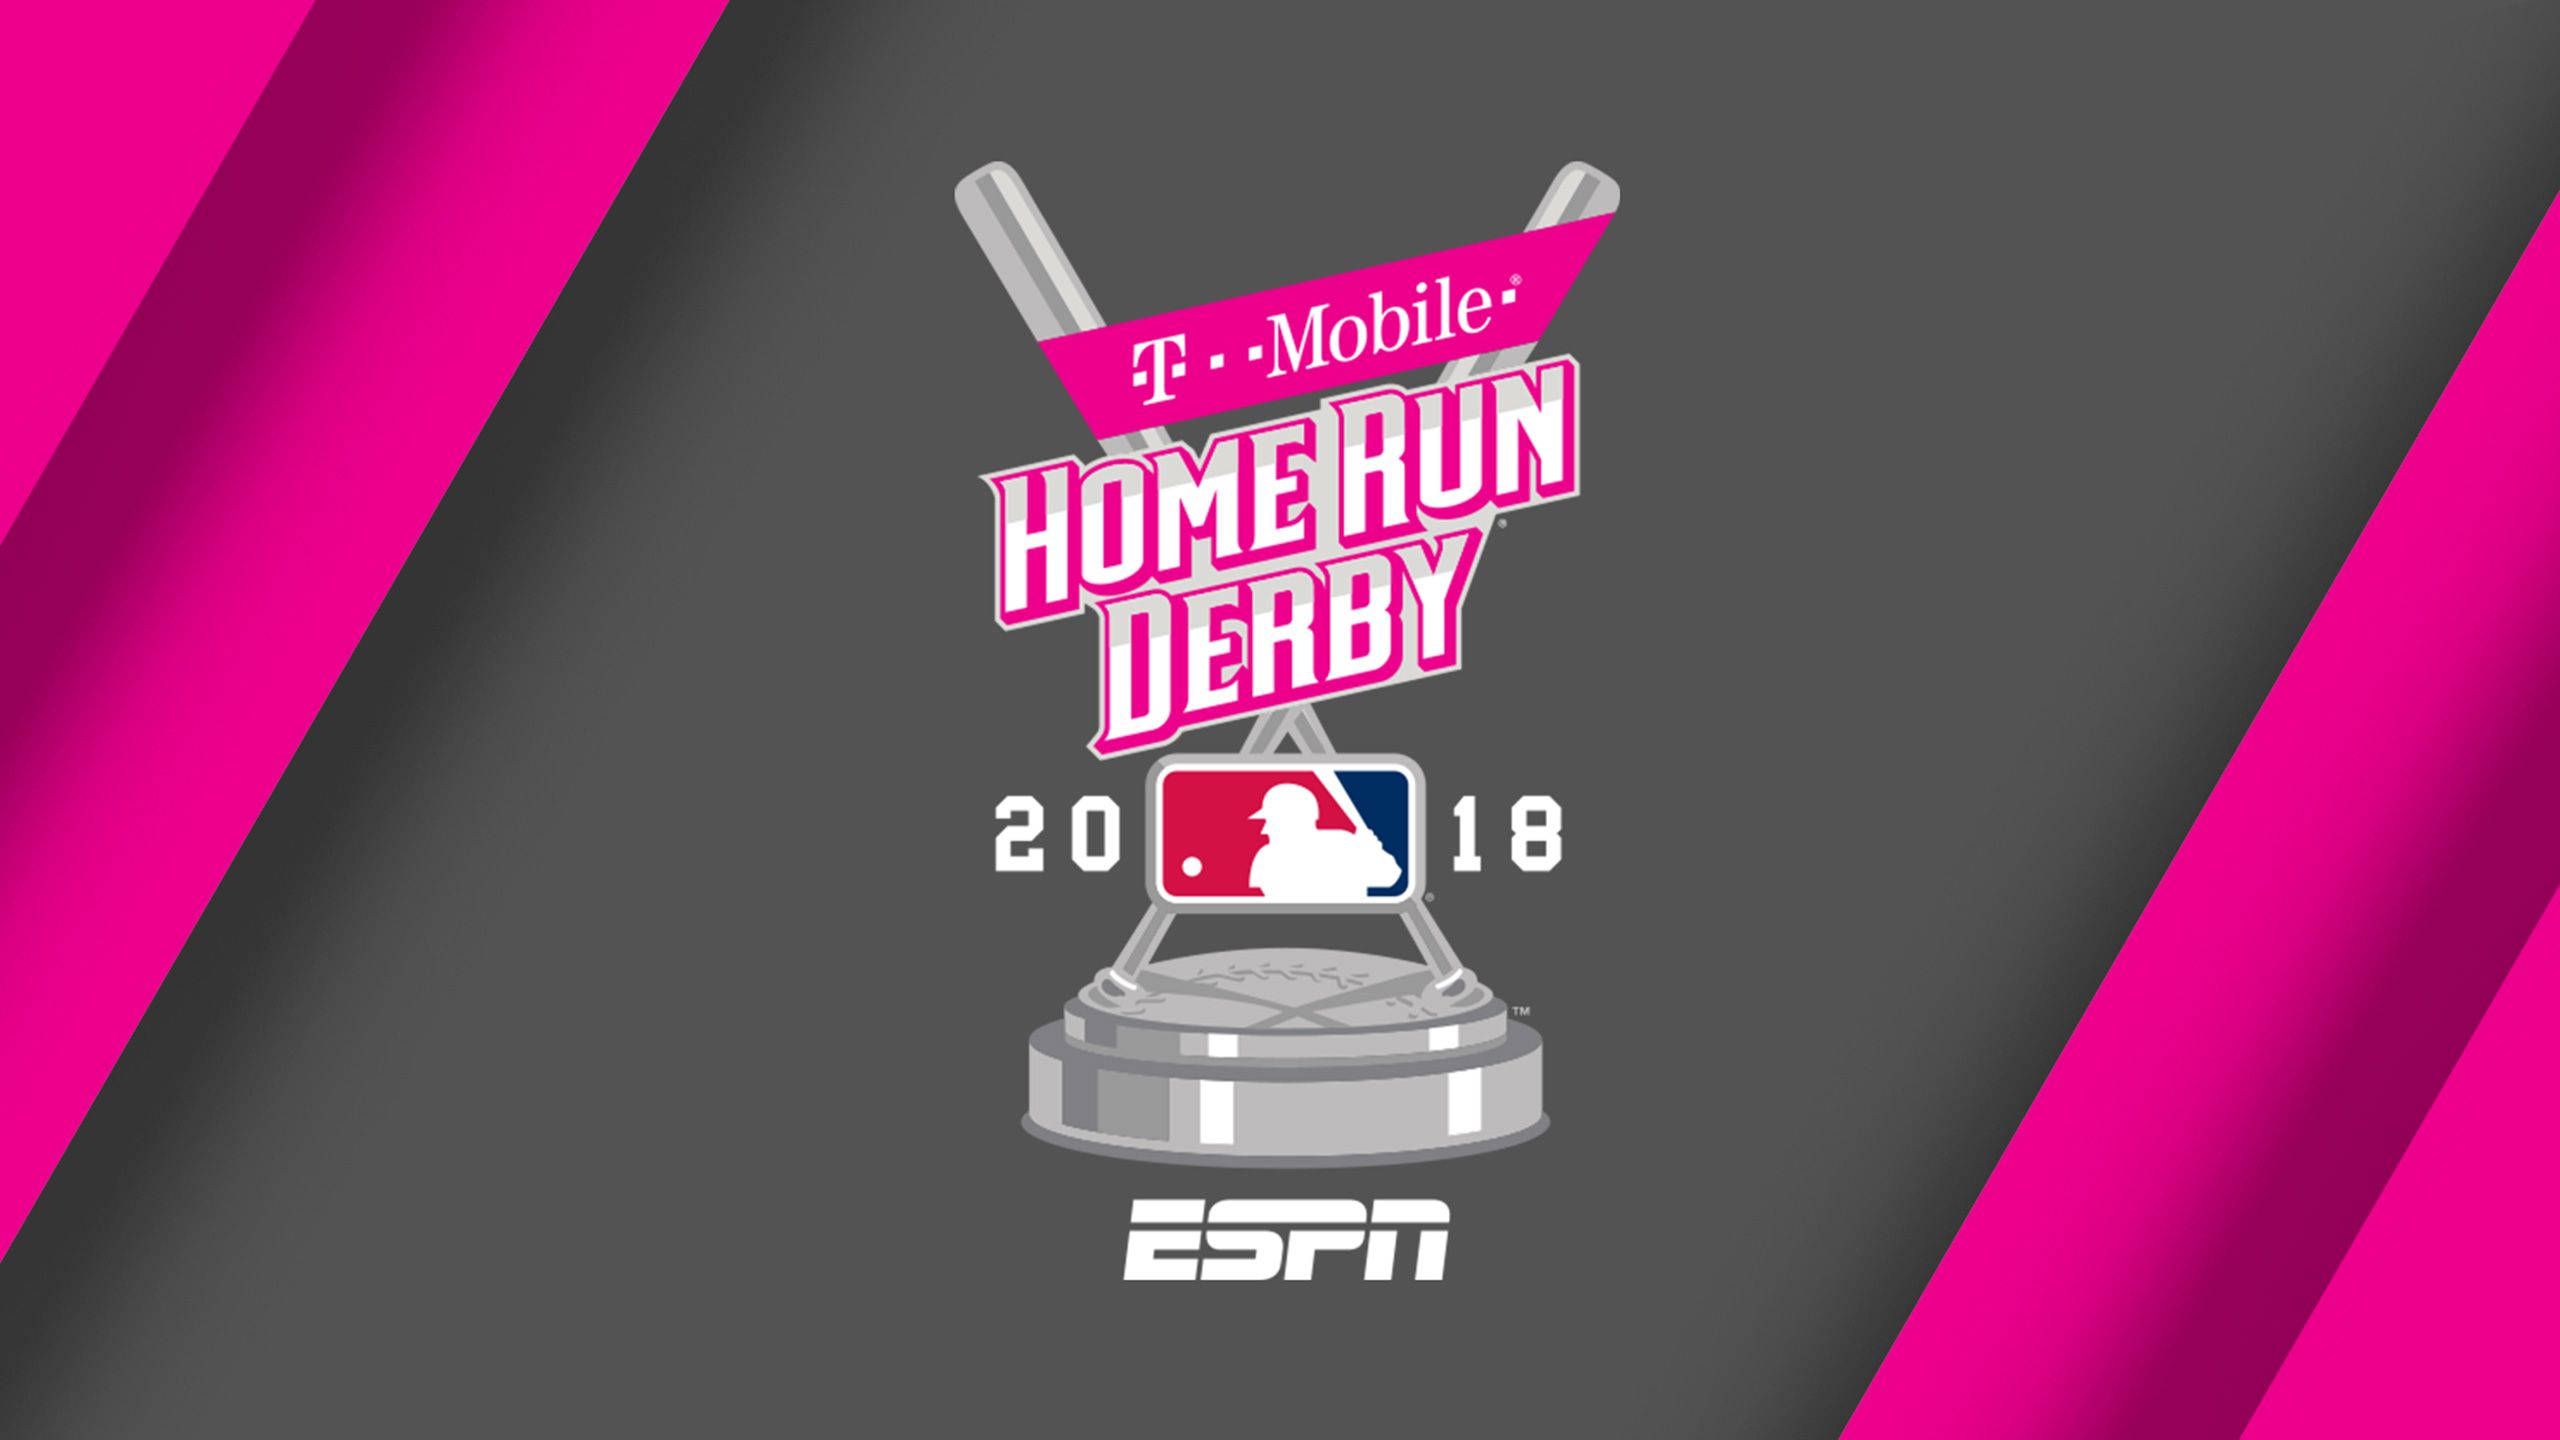 In Spanish - Home Run Derby